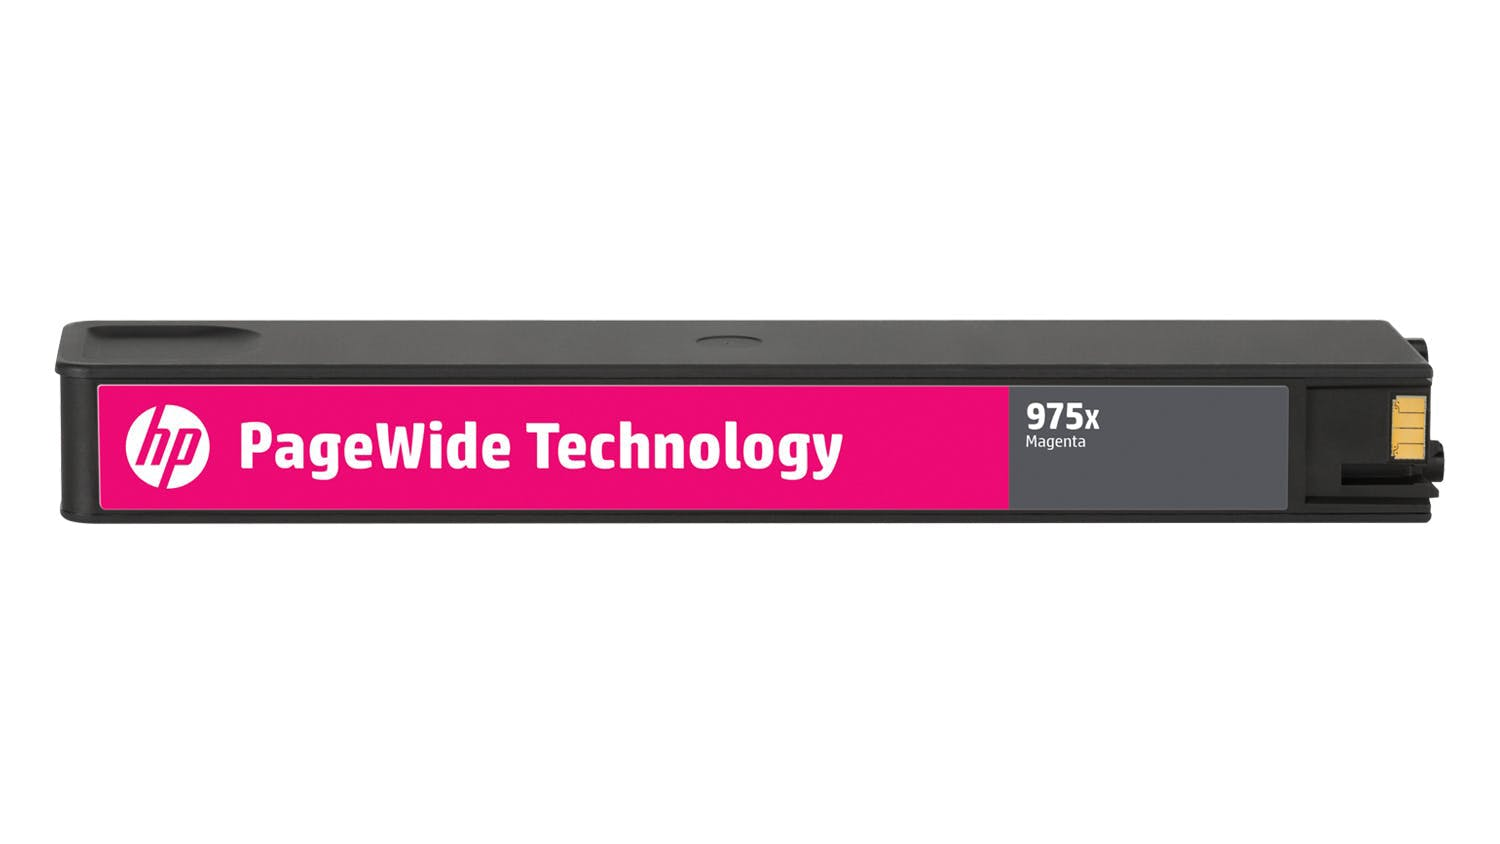 HP 975X Magenta PageWide Cartridge